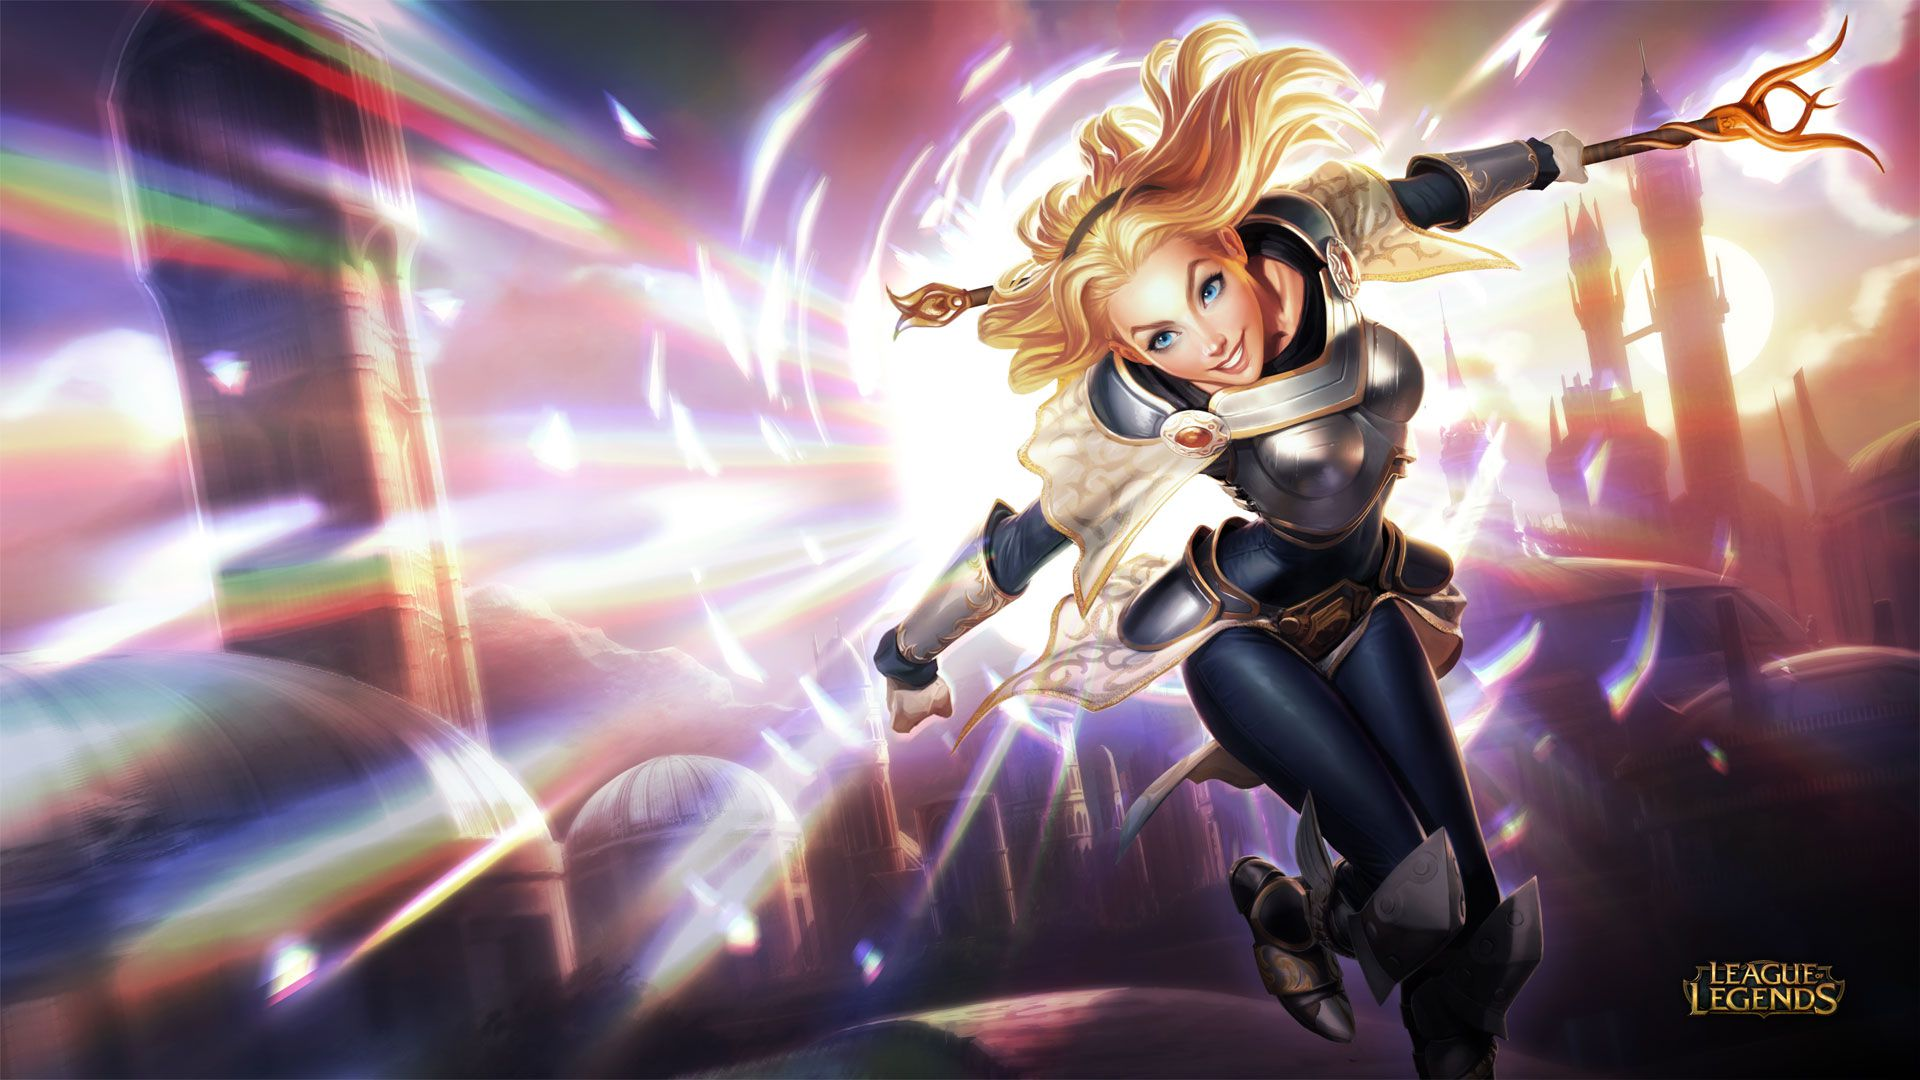 Lux Wallpaper - League of Legends Wallpapers